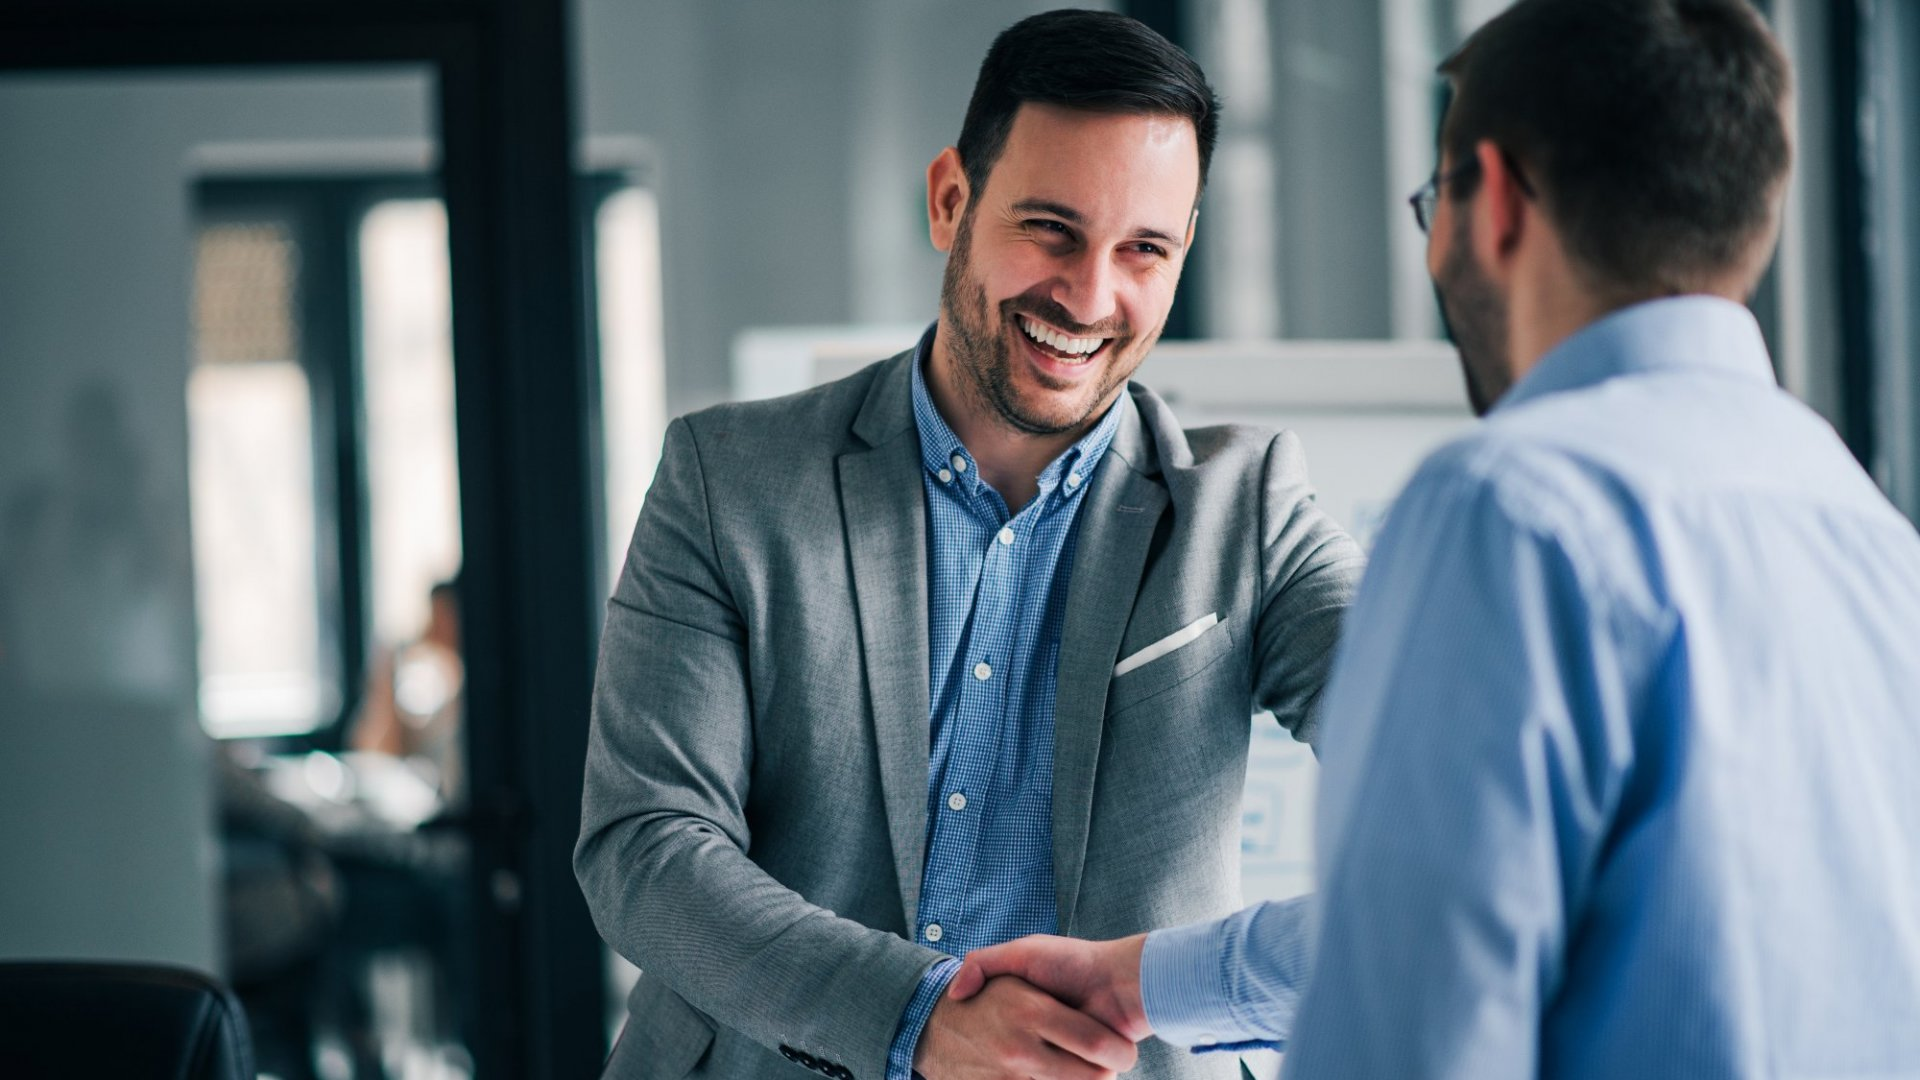 7 Ways to Effectively Build Rapport With New Customers